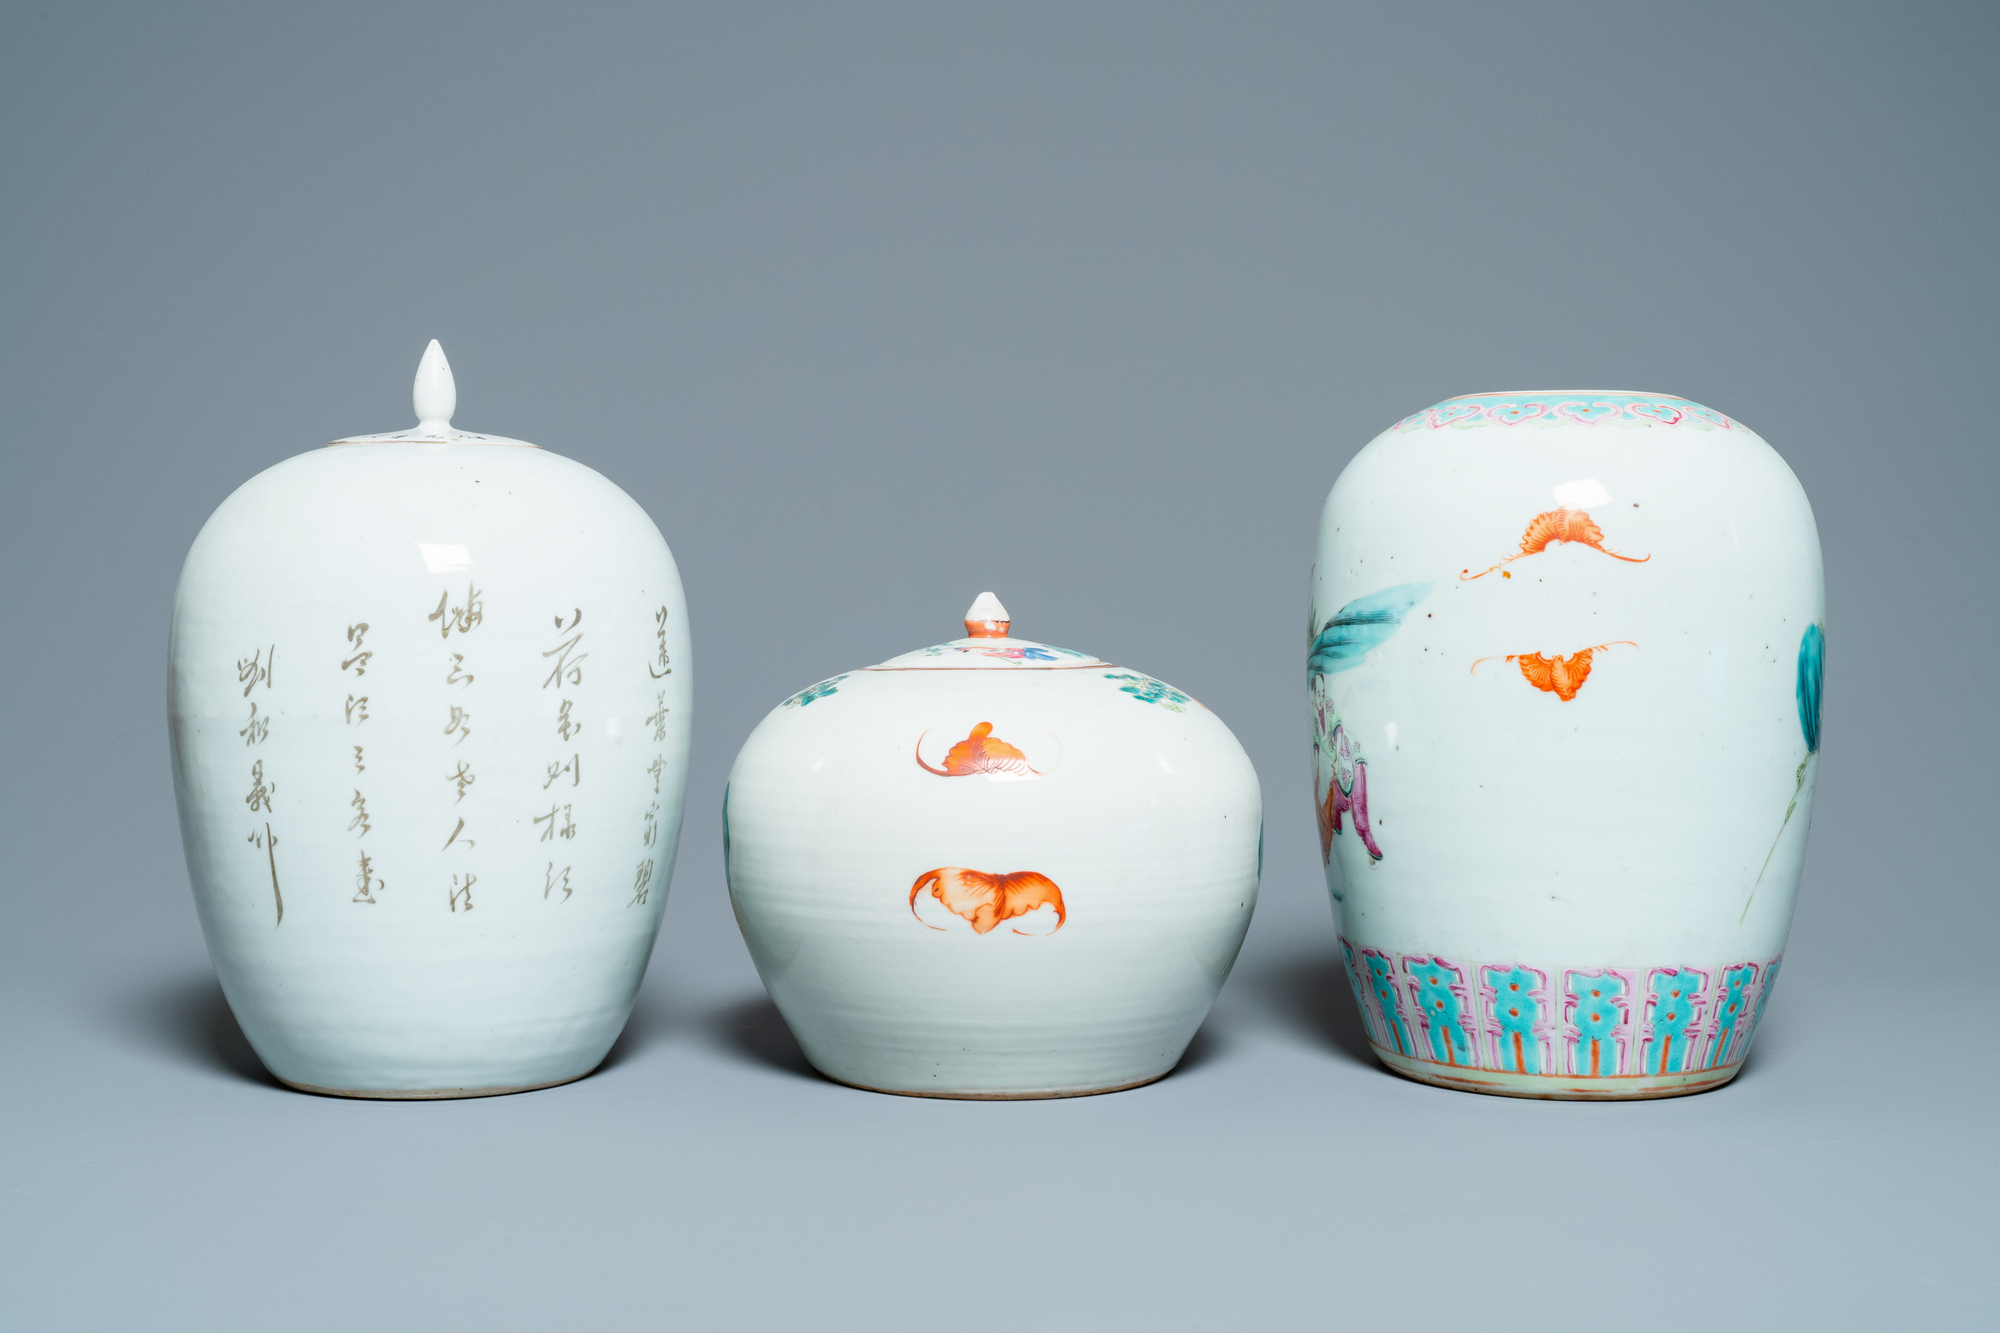 Six Chinese famille rose and verte vases, 19/20th C. - Image 4 of 13